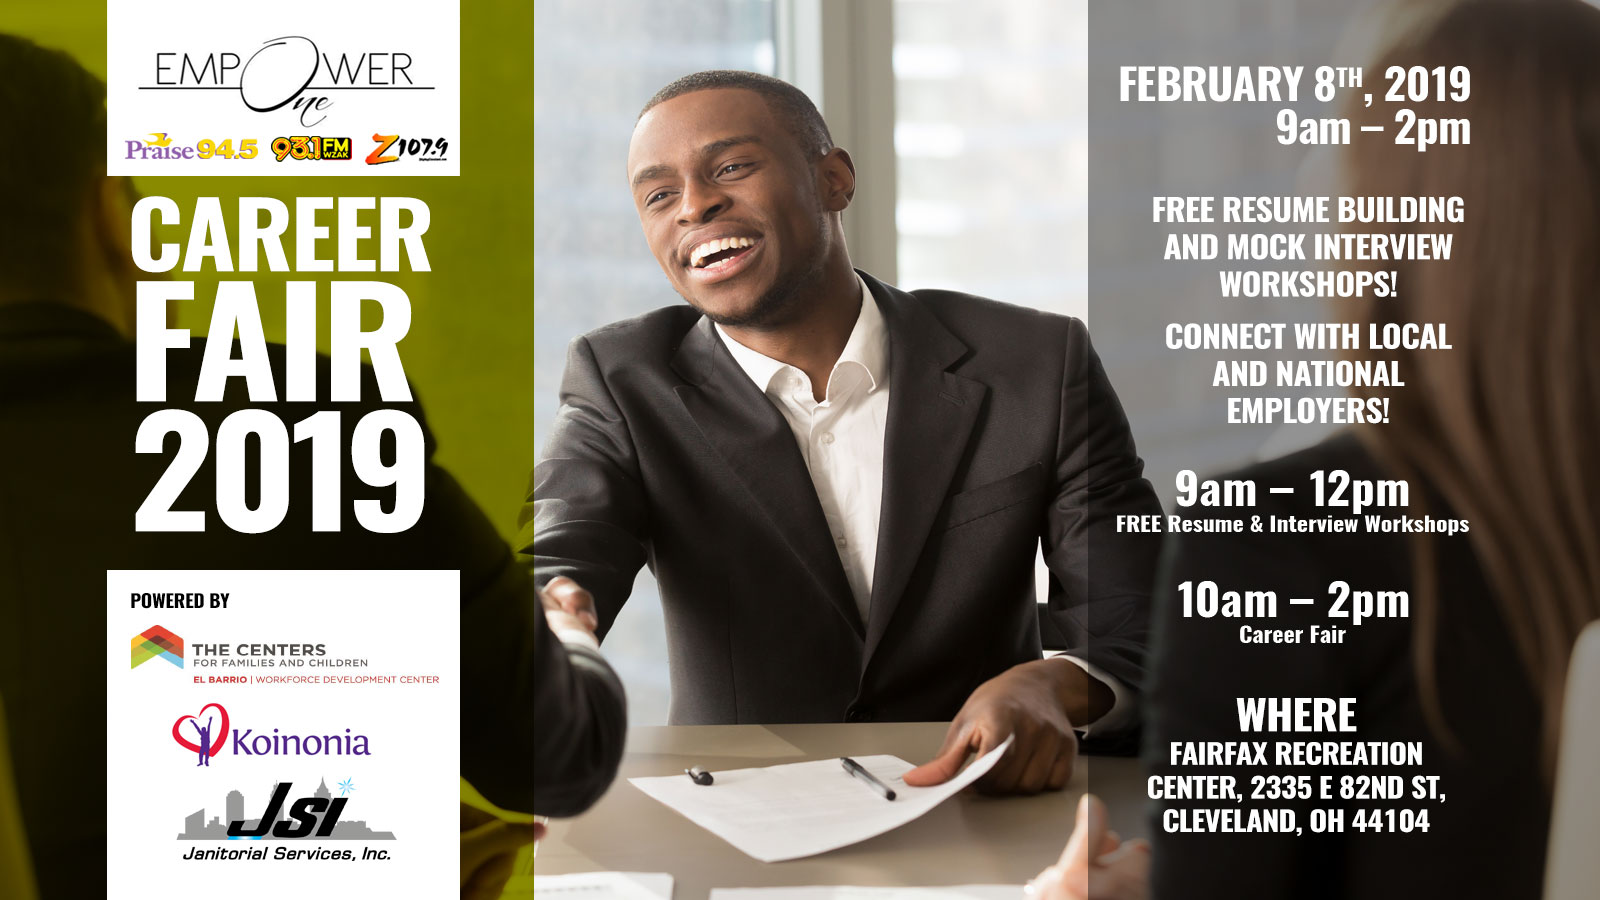 empower one job fair